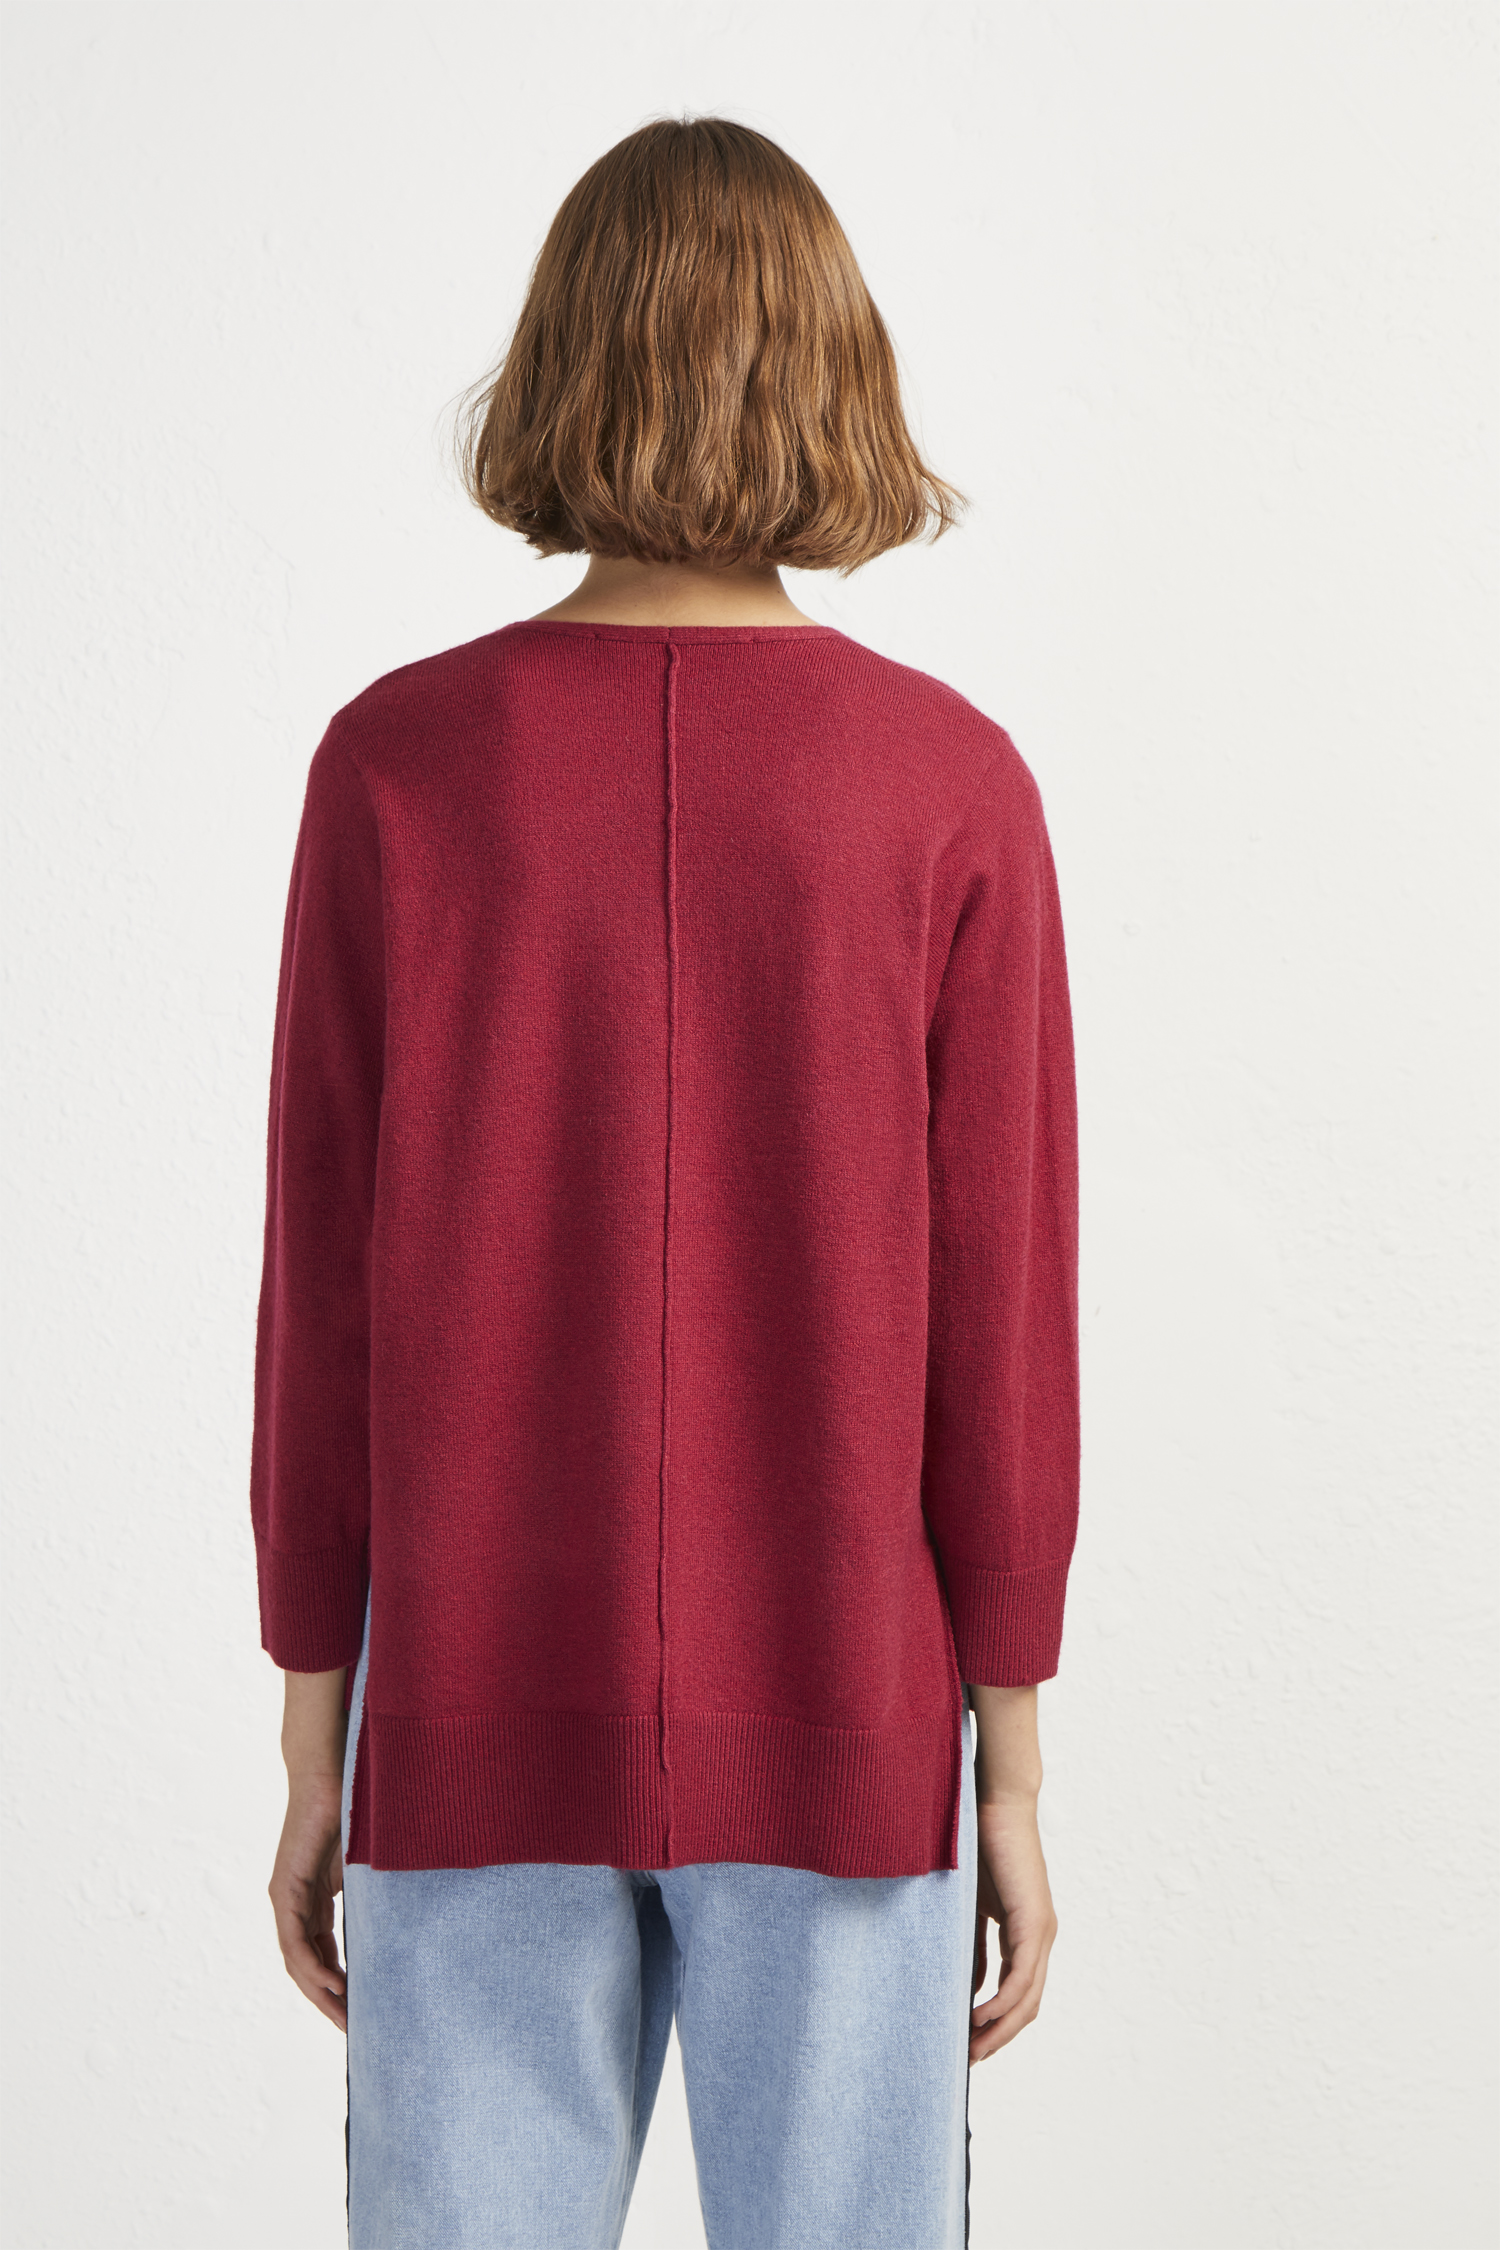 French Connection Womens Ebba Vhari Jumper